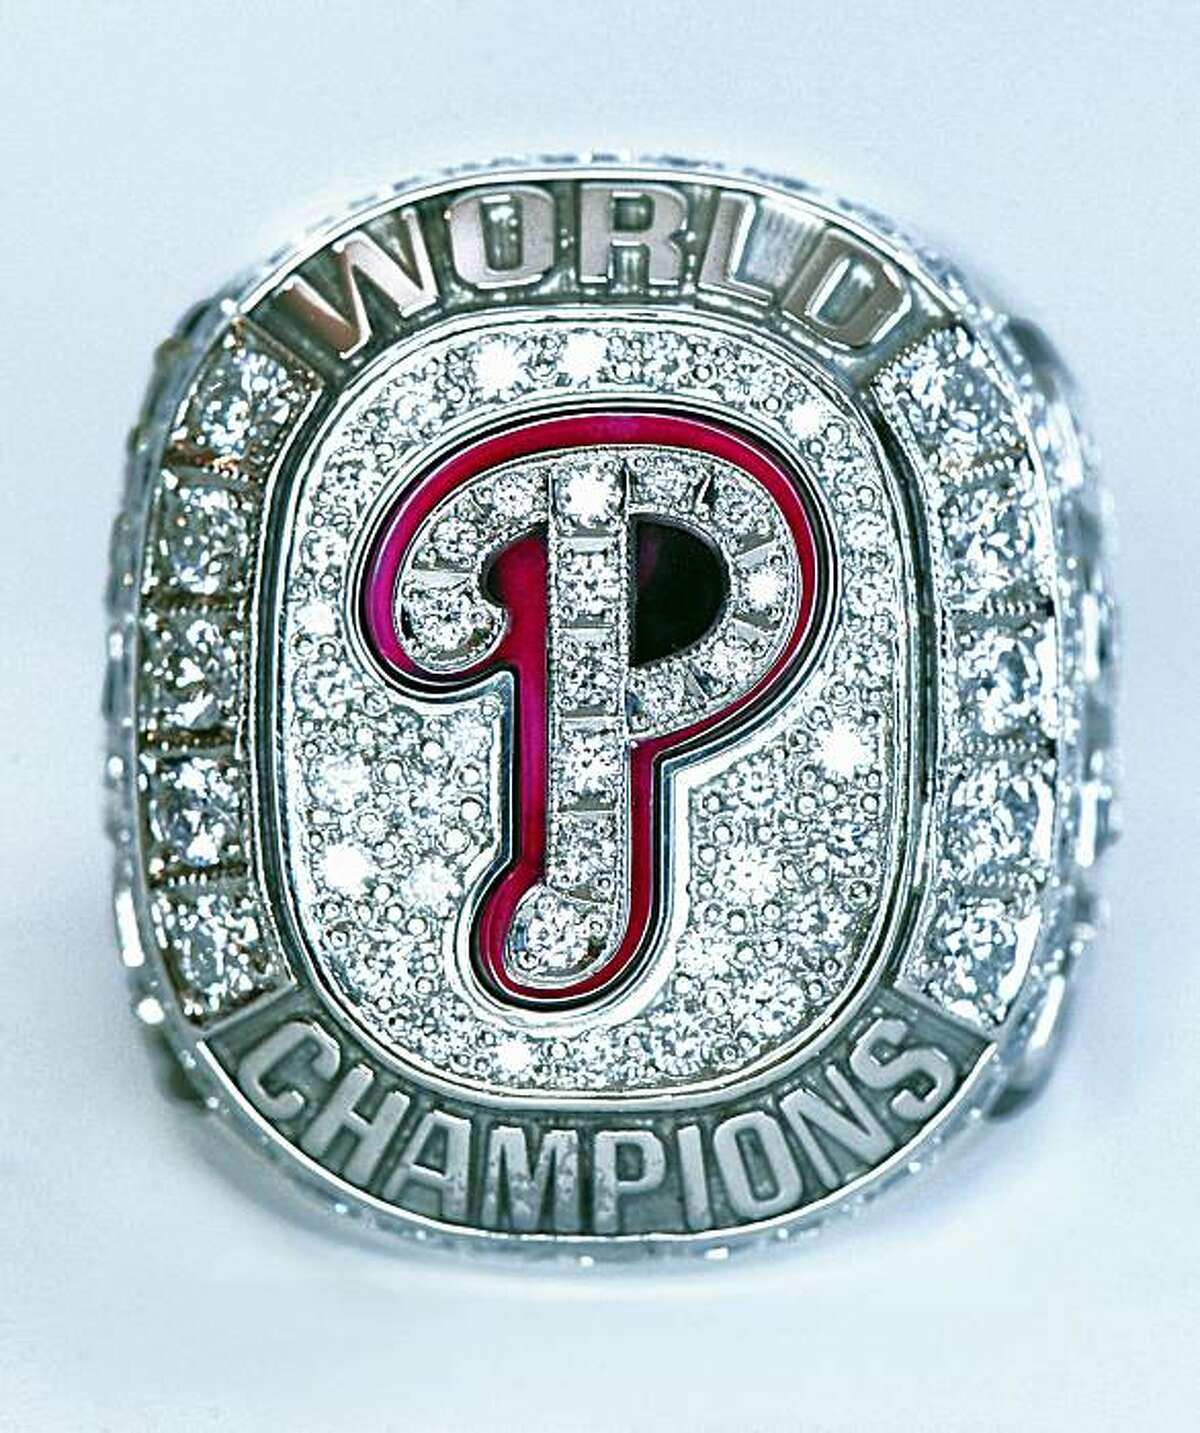 In this photo released by the Philadelphia Phillies on Wednesday, Aprl 8, 2009, the Phillies World Series Champions ring is shown. The team presented the rings to the players in a pregame ceremony on Wednesday, before a baseball game against the Atlanta Braves in Philadelphia. (AP Photo/Philadelphia Phillies) ** NO SALES **